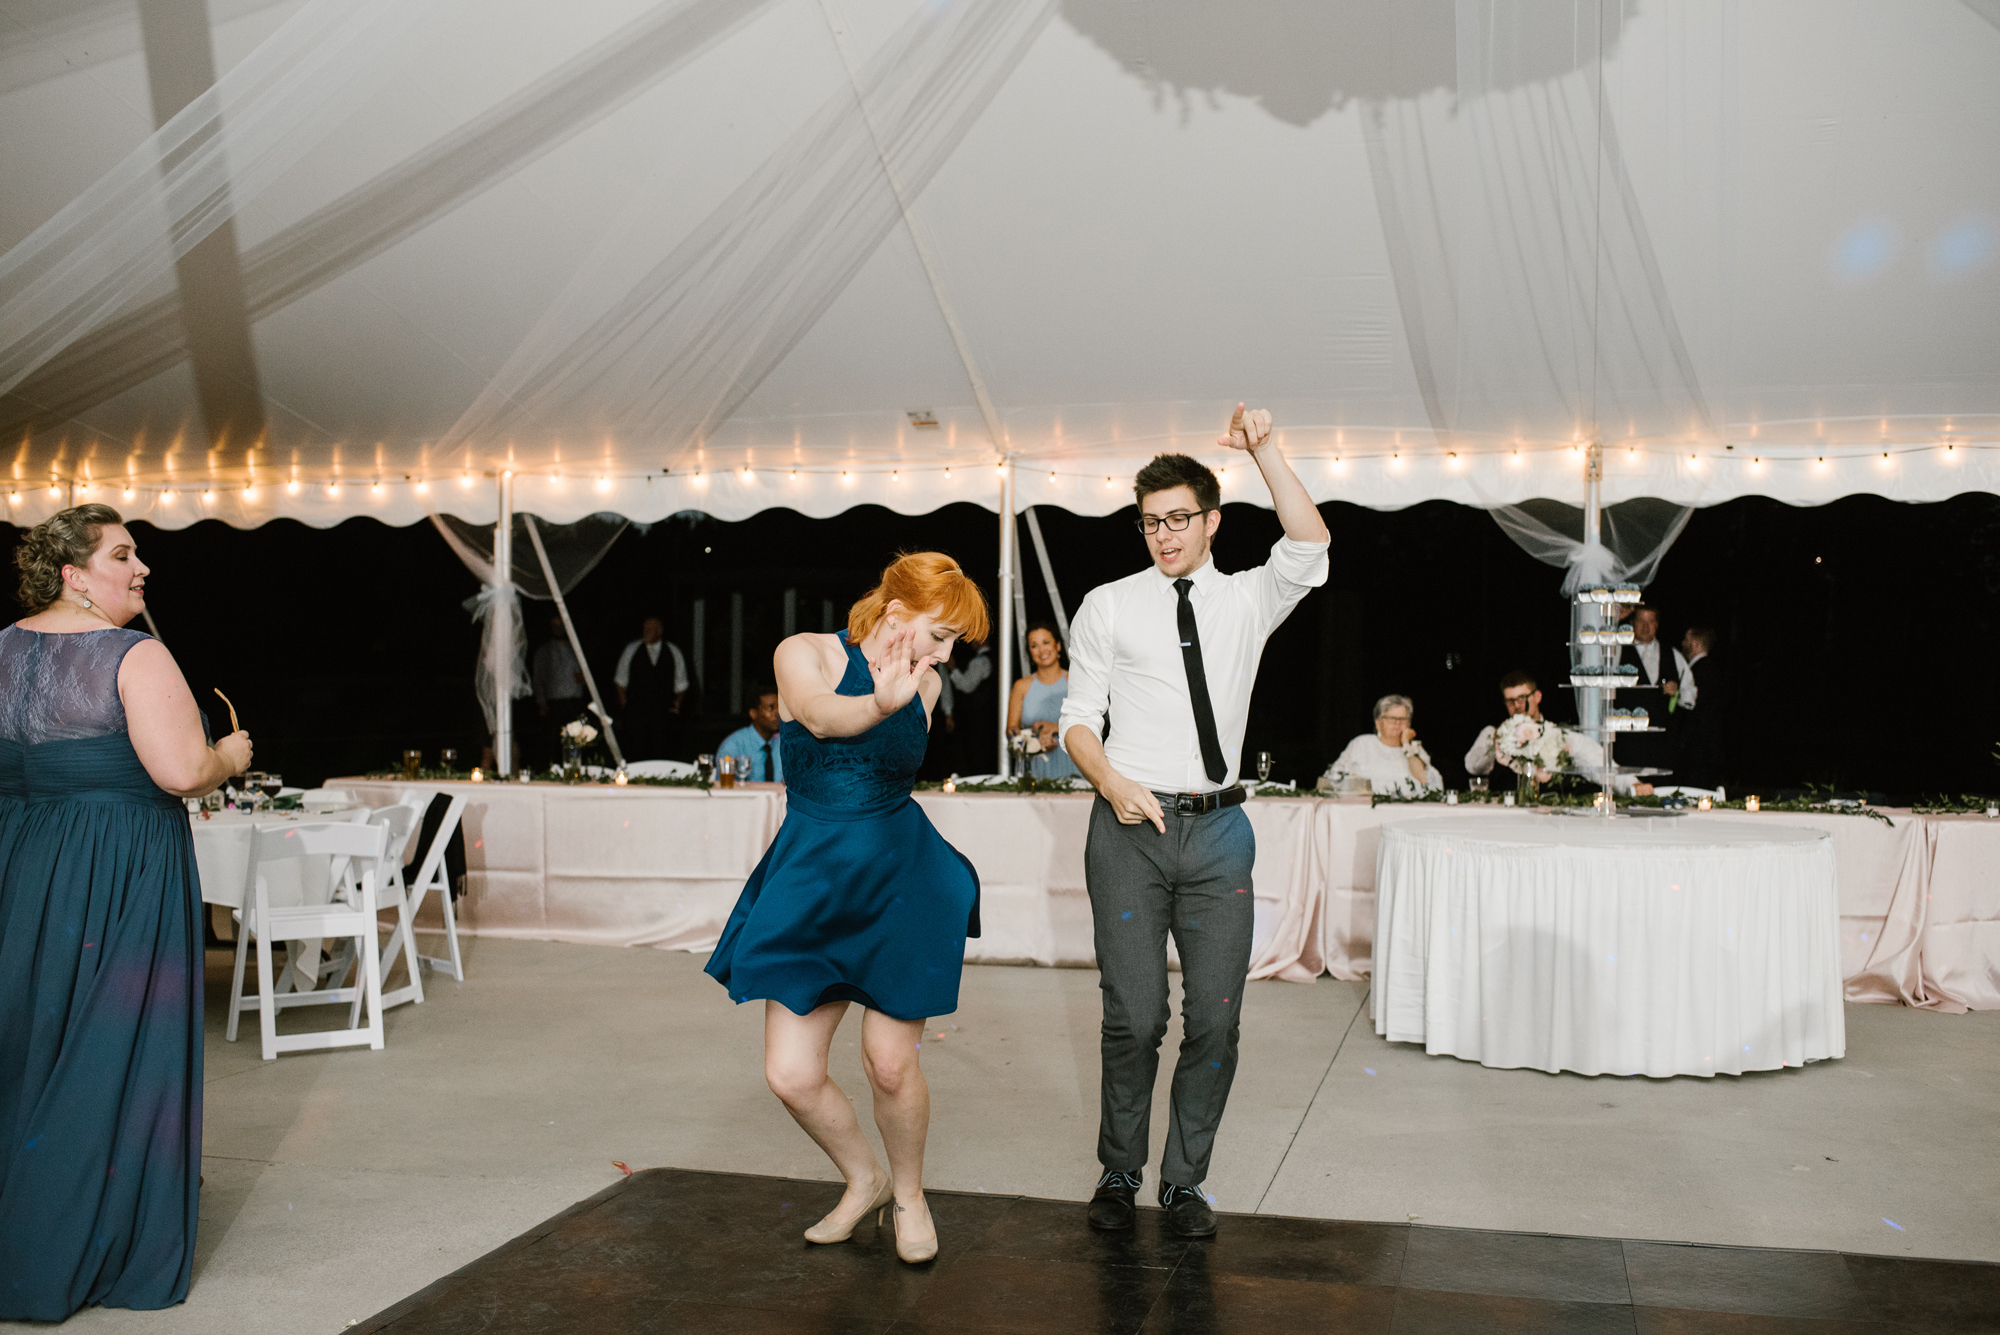 trillium-event-center-spring-lake-michigan-dancing-photos-sydney-marie (13).jpg